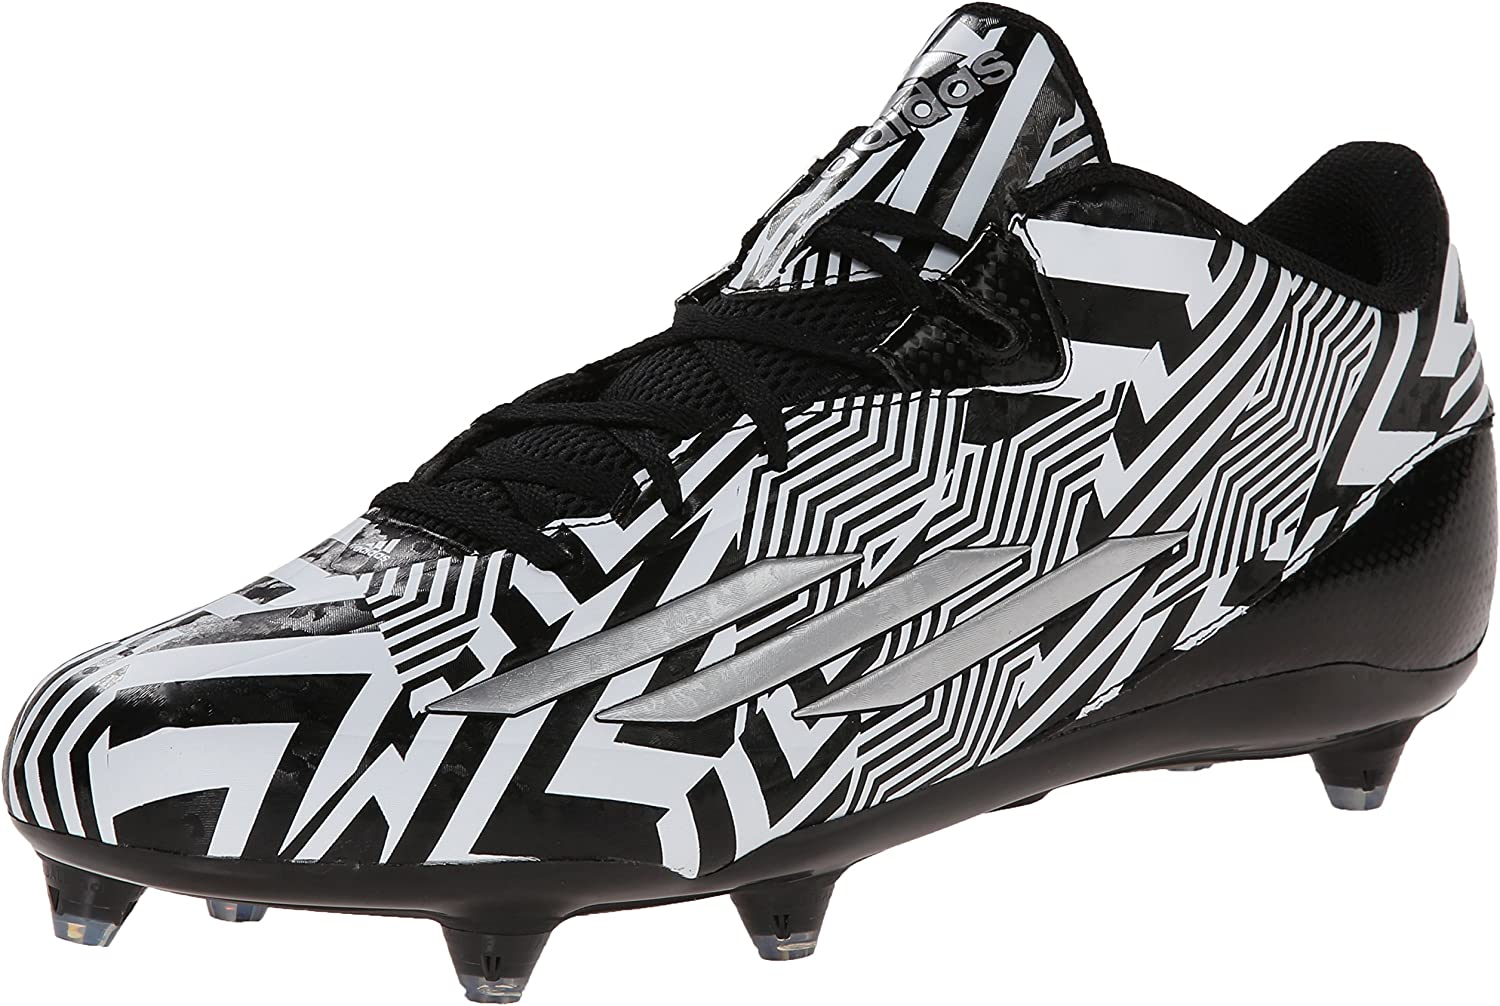 Filthyspeed Low D Football Cleat